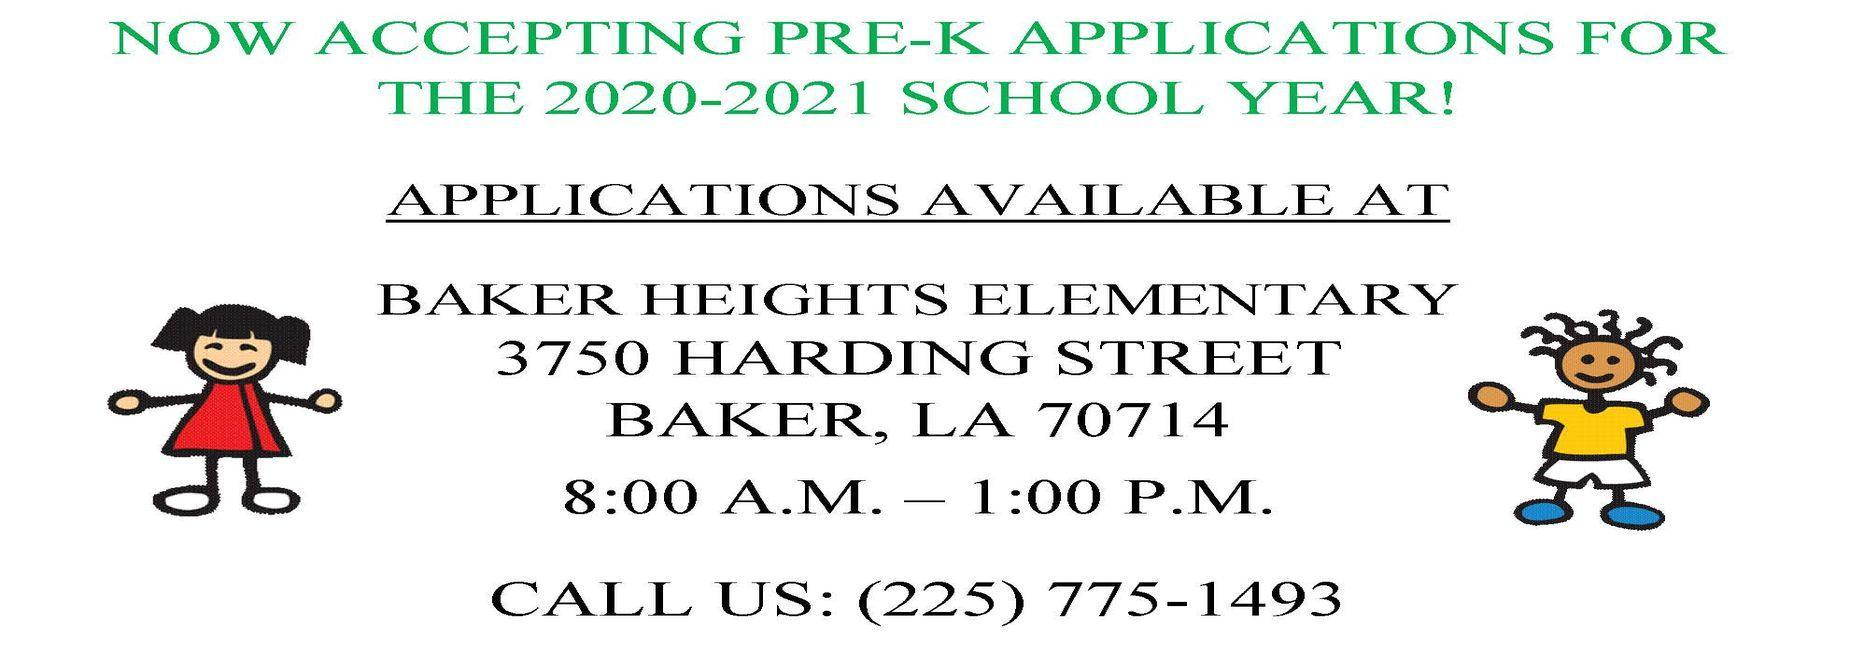 a graphic of a flyer promoting the Pre-K enrollment applications at Baker Heights